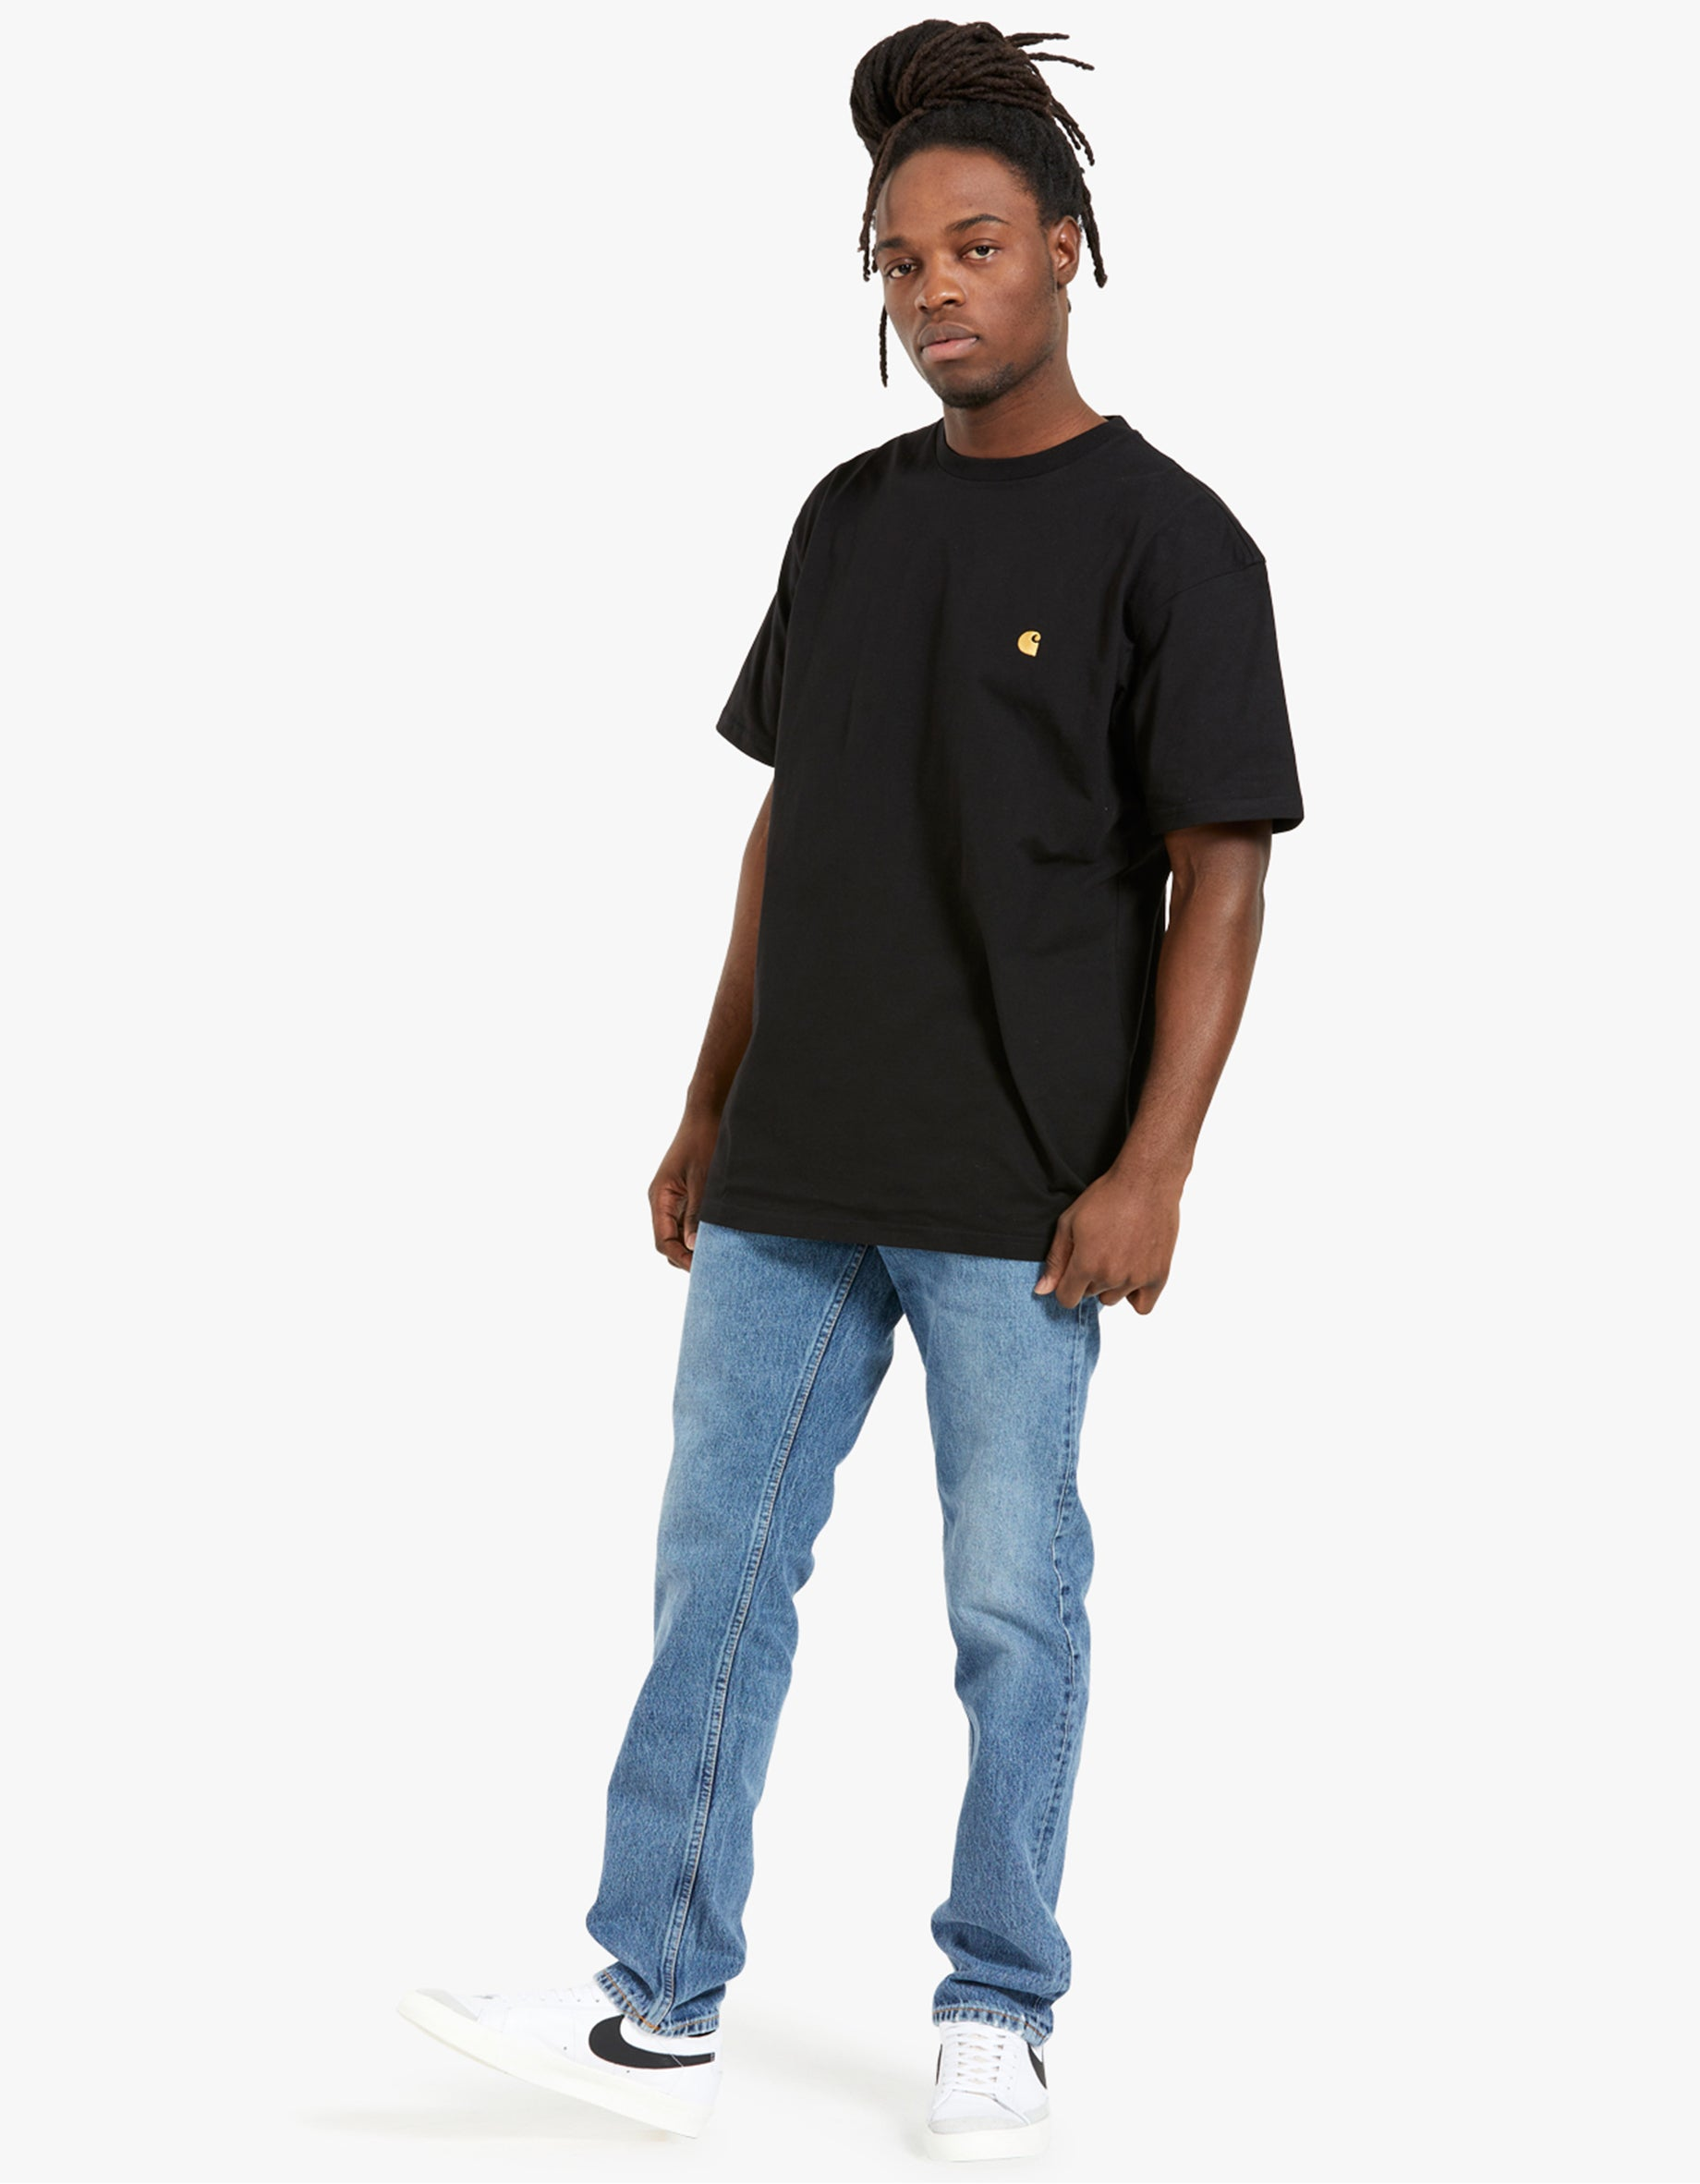 S/S Chase T-Shirt - Black/Gold